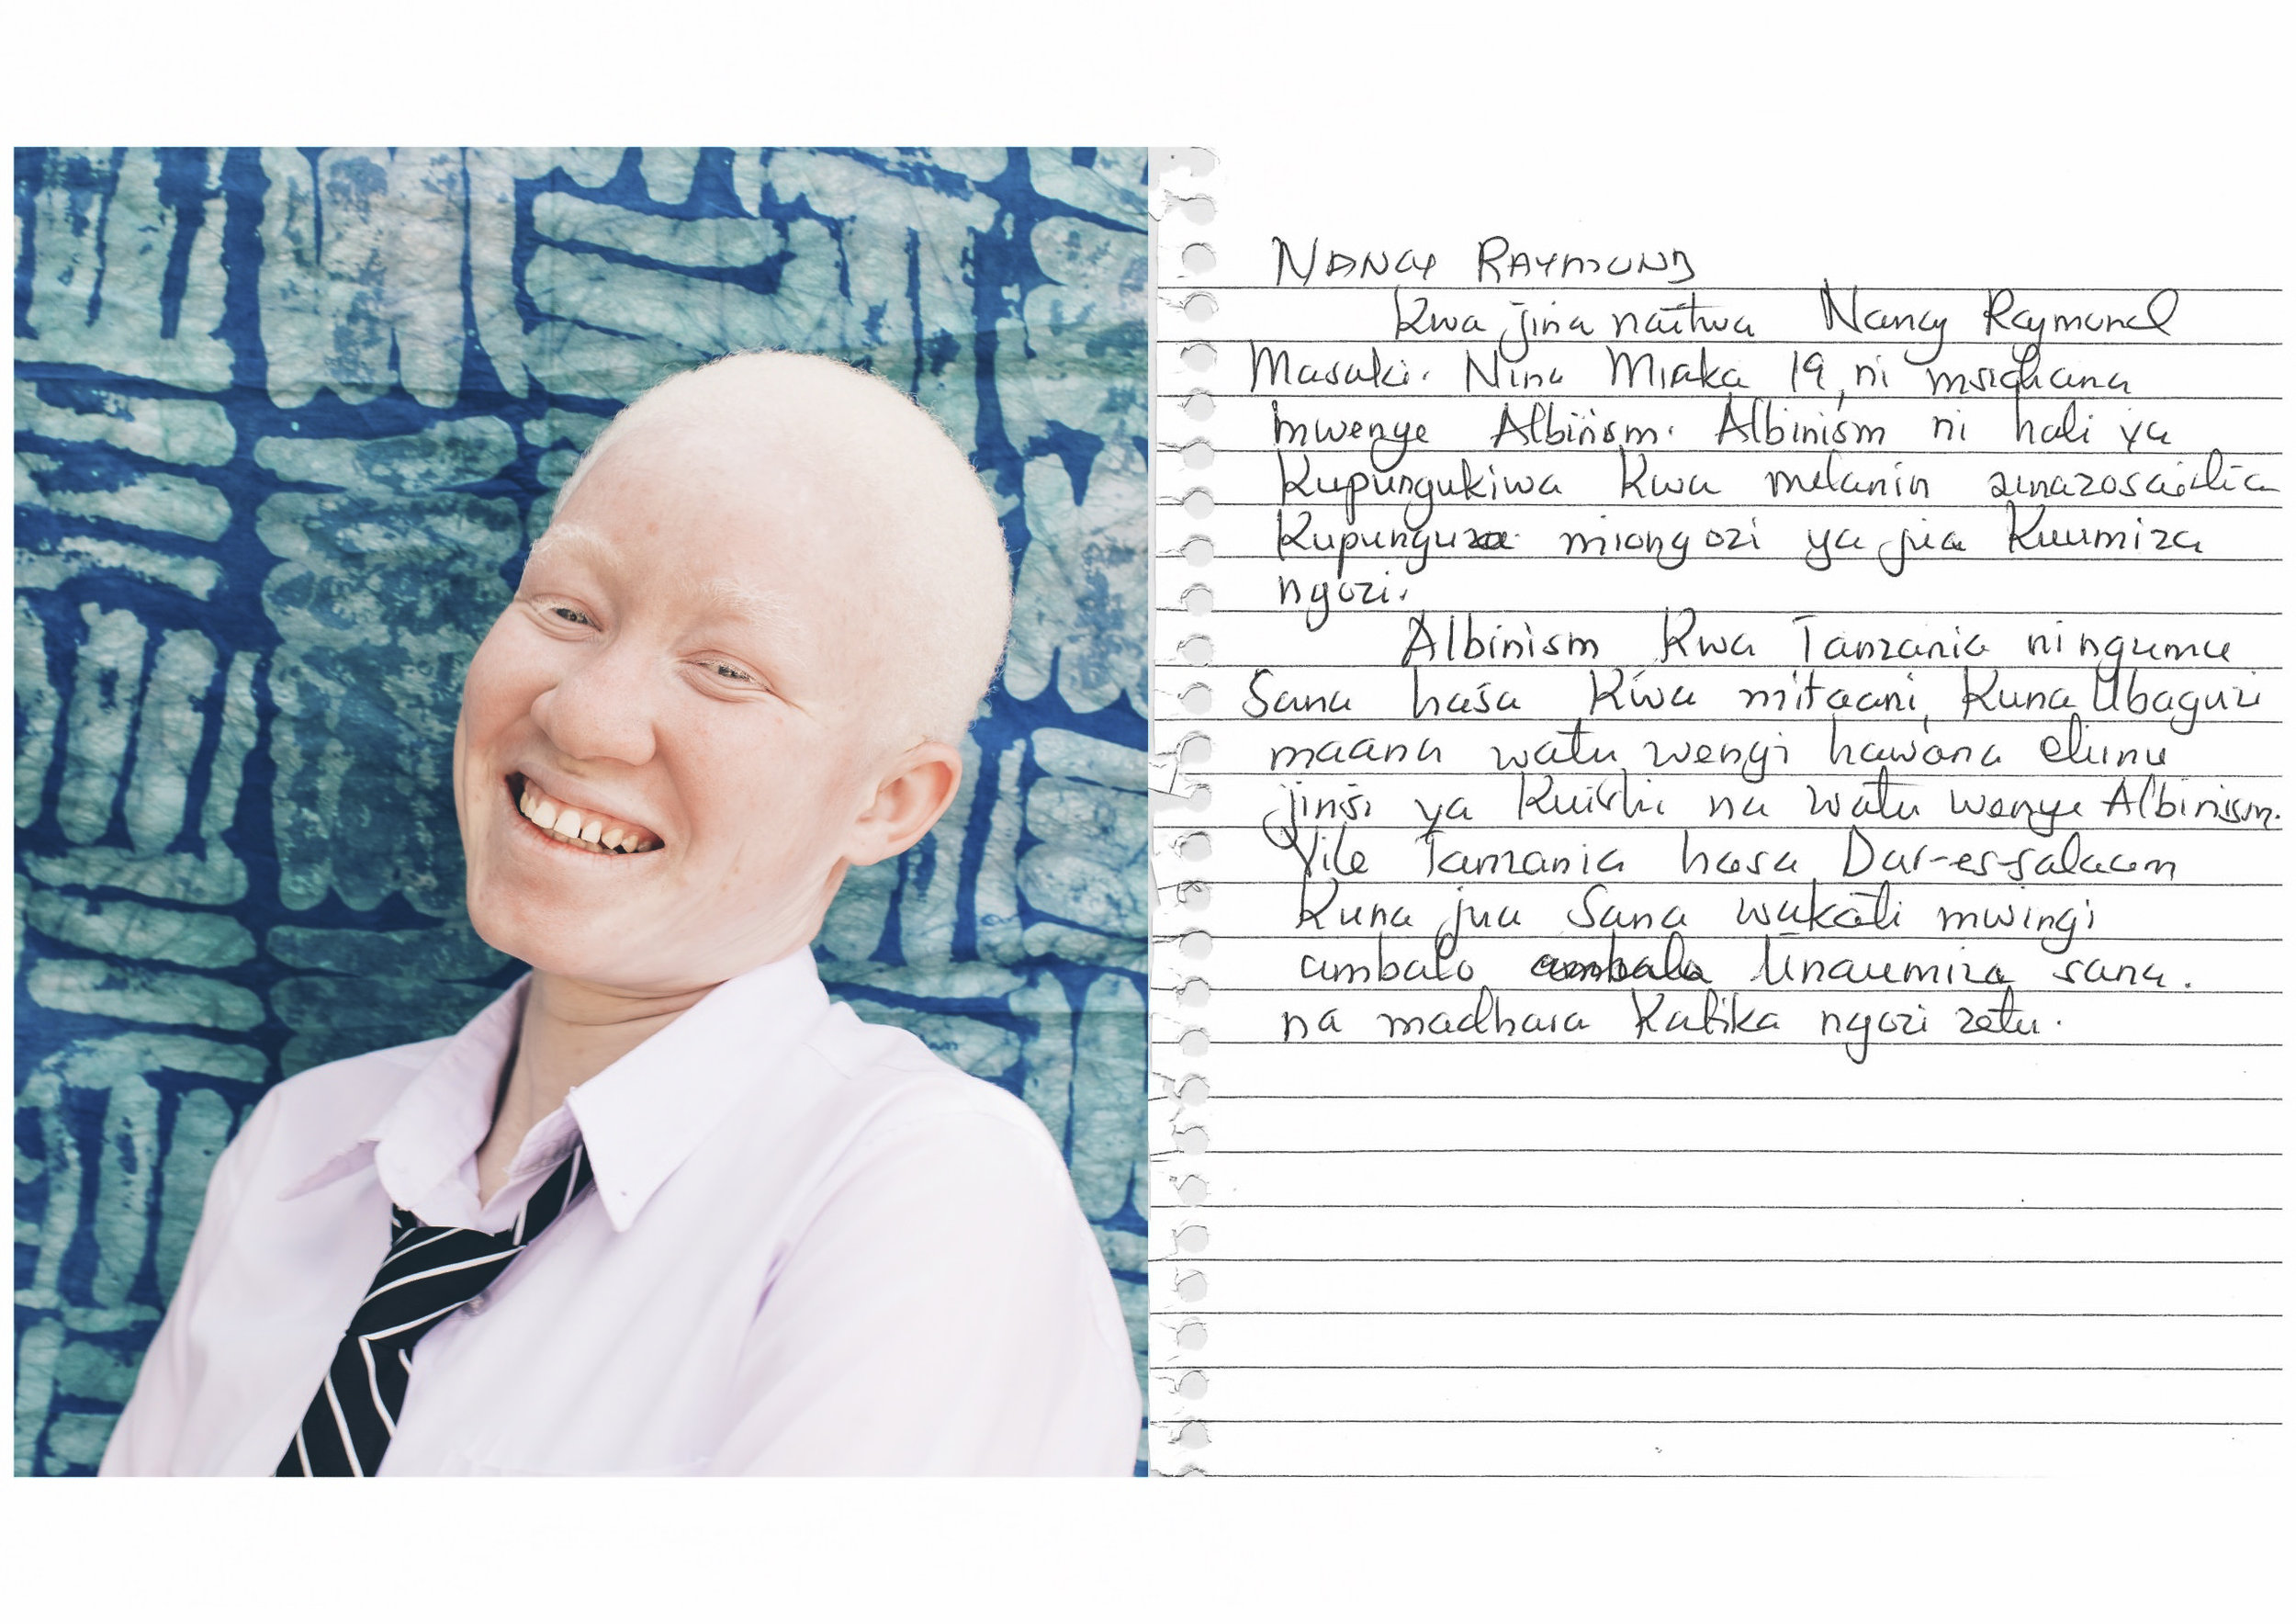 My name is Nancy Raymond Masaki. I am 19 years old. I am a young girl with albinism. Albinism is a condition of lacking melanin that prevents sun rays from affecting the skin.    In Tanzania, albinism is still a challenge especially in the streets, where there is a lot of stigma because many people do not have an education on how to live with people with albinism.    Also in Tanzania, especially in Dar es Salaam, for the most part of the year it is very hot. The heat troubles us and has severe effects on our skin.